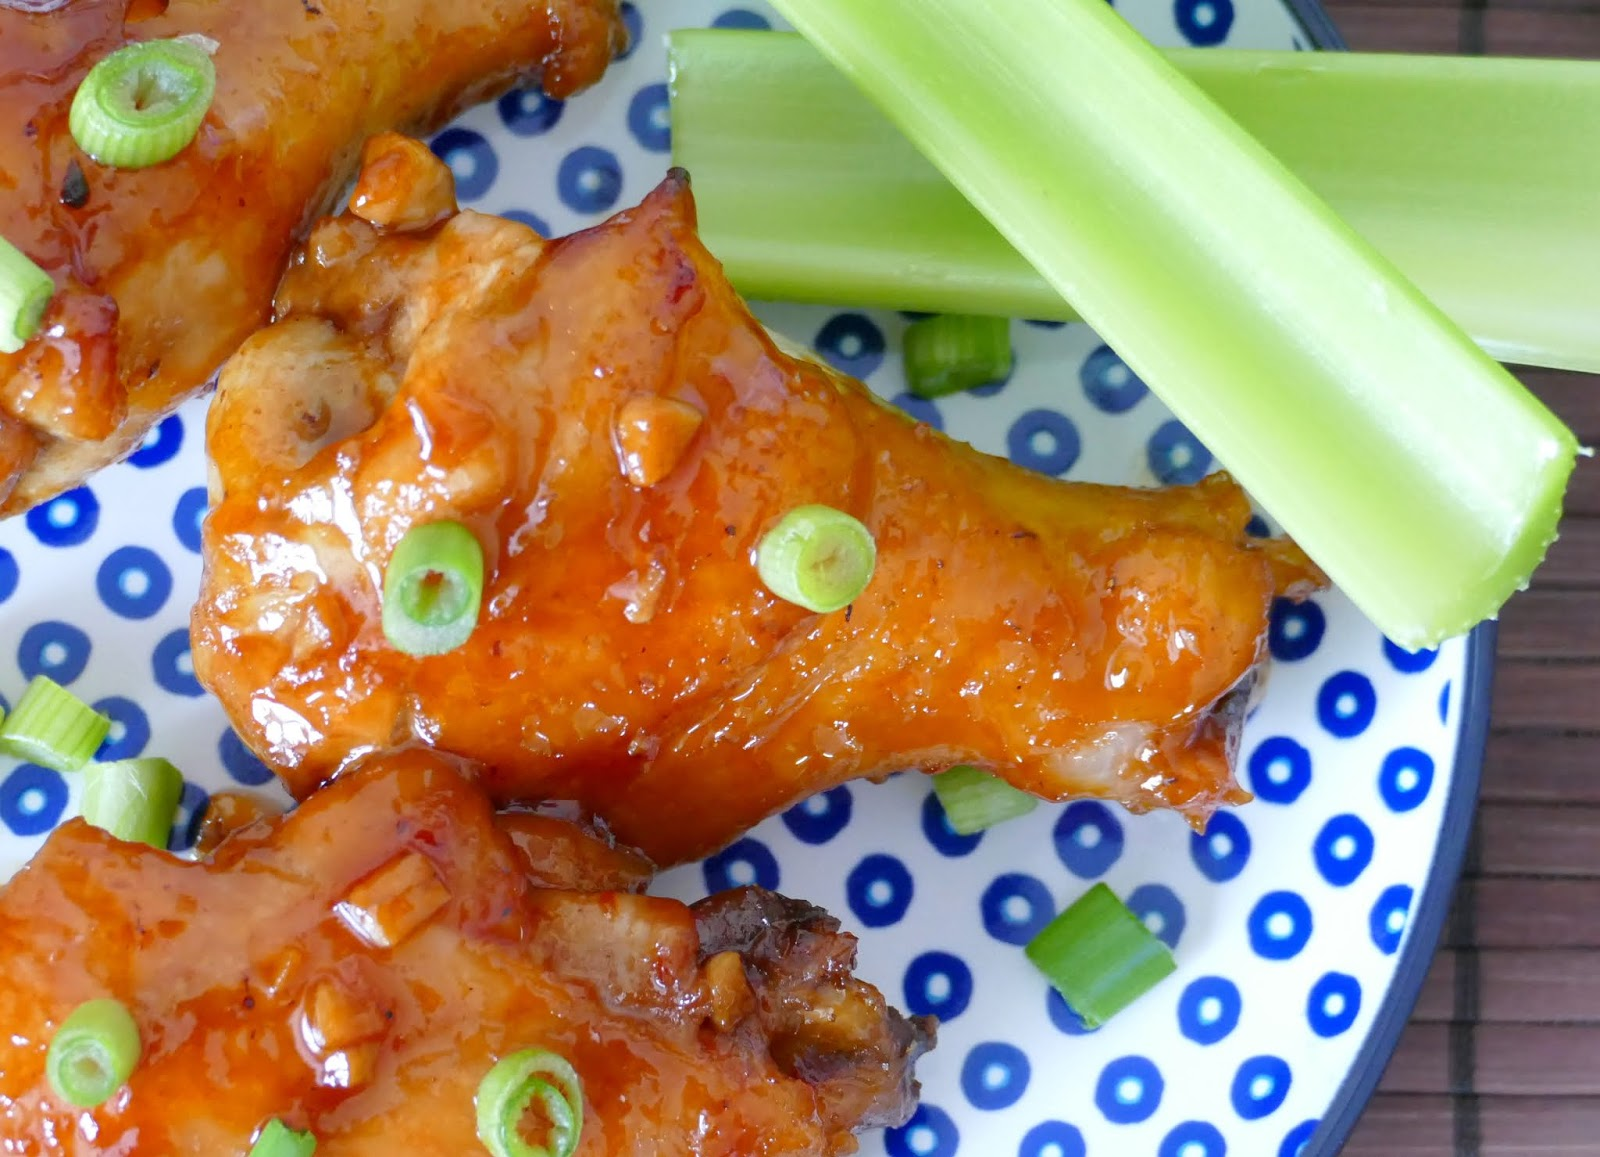 These easy, sticky oven baked wings are the perfect appetizer for any game day party, for dinner or any holiday. The teriyaki and garlic flavor is delicious and the Asian flavored sauce is super simple to make! They are a crowd pleaser!